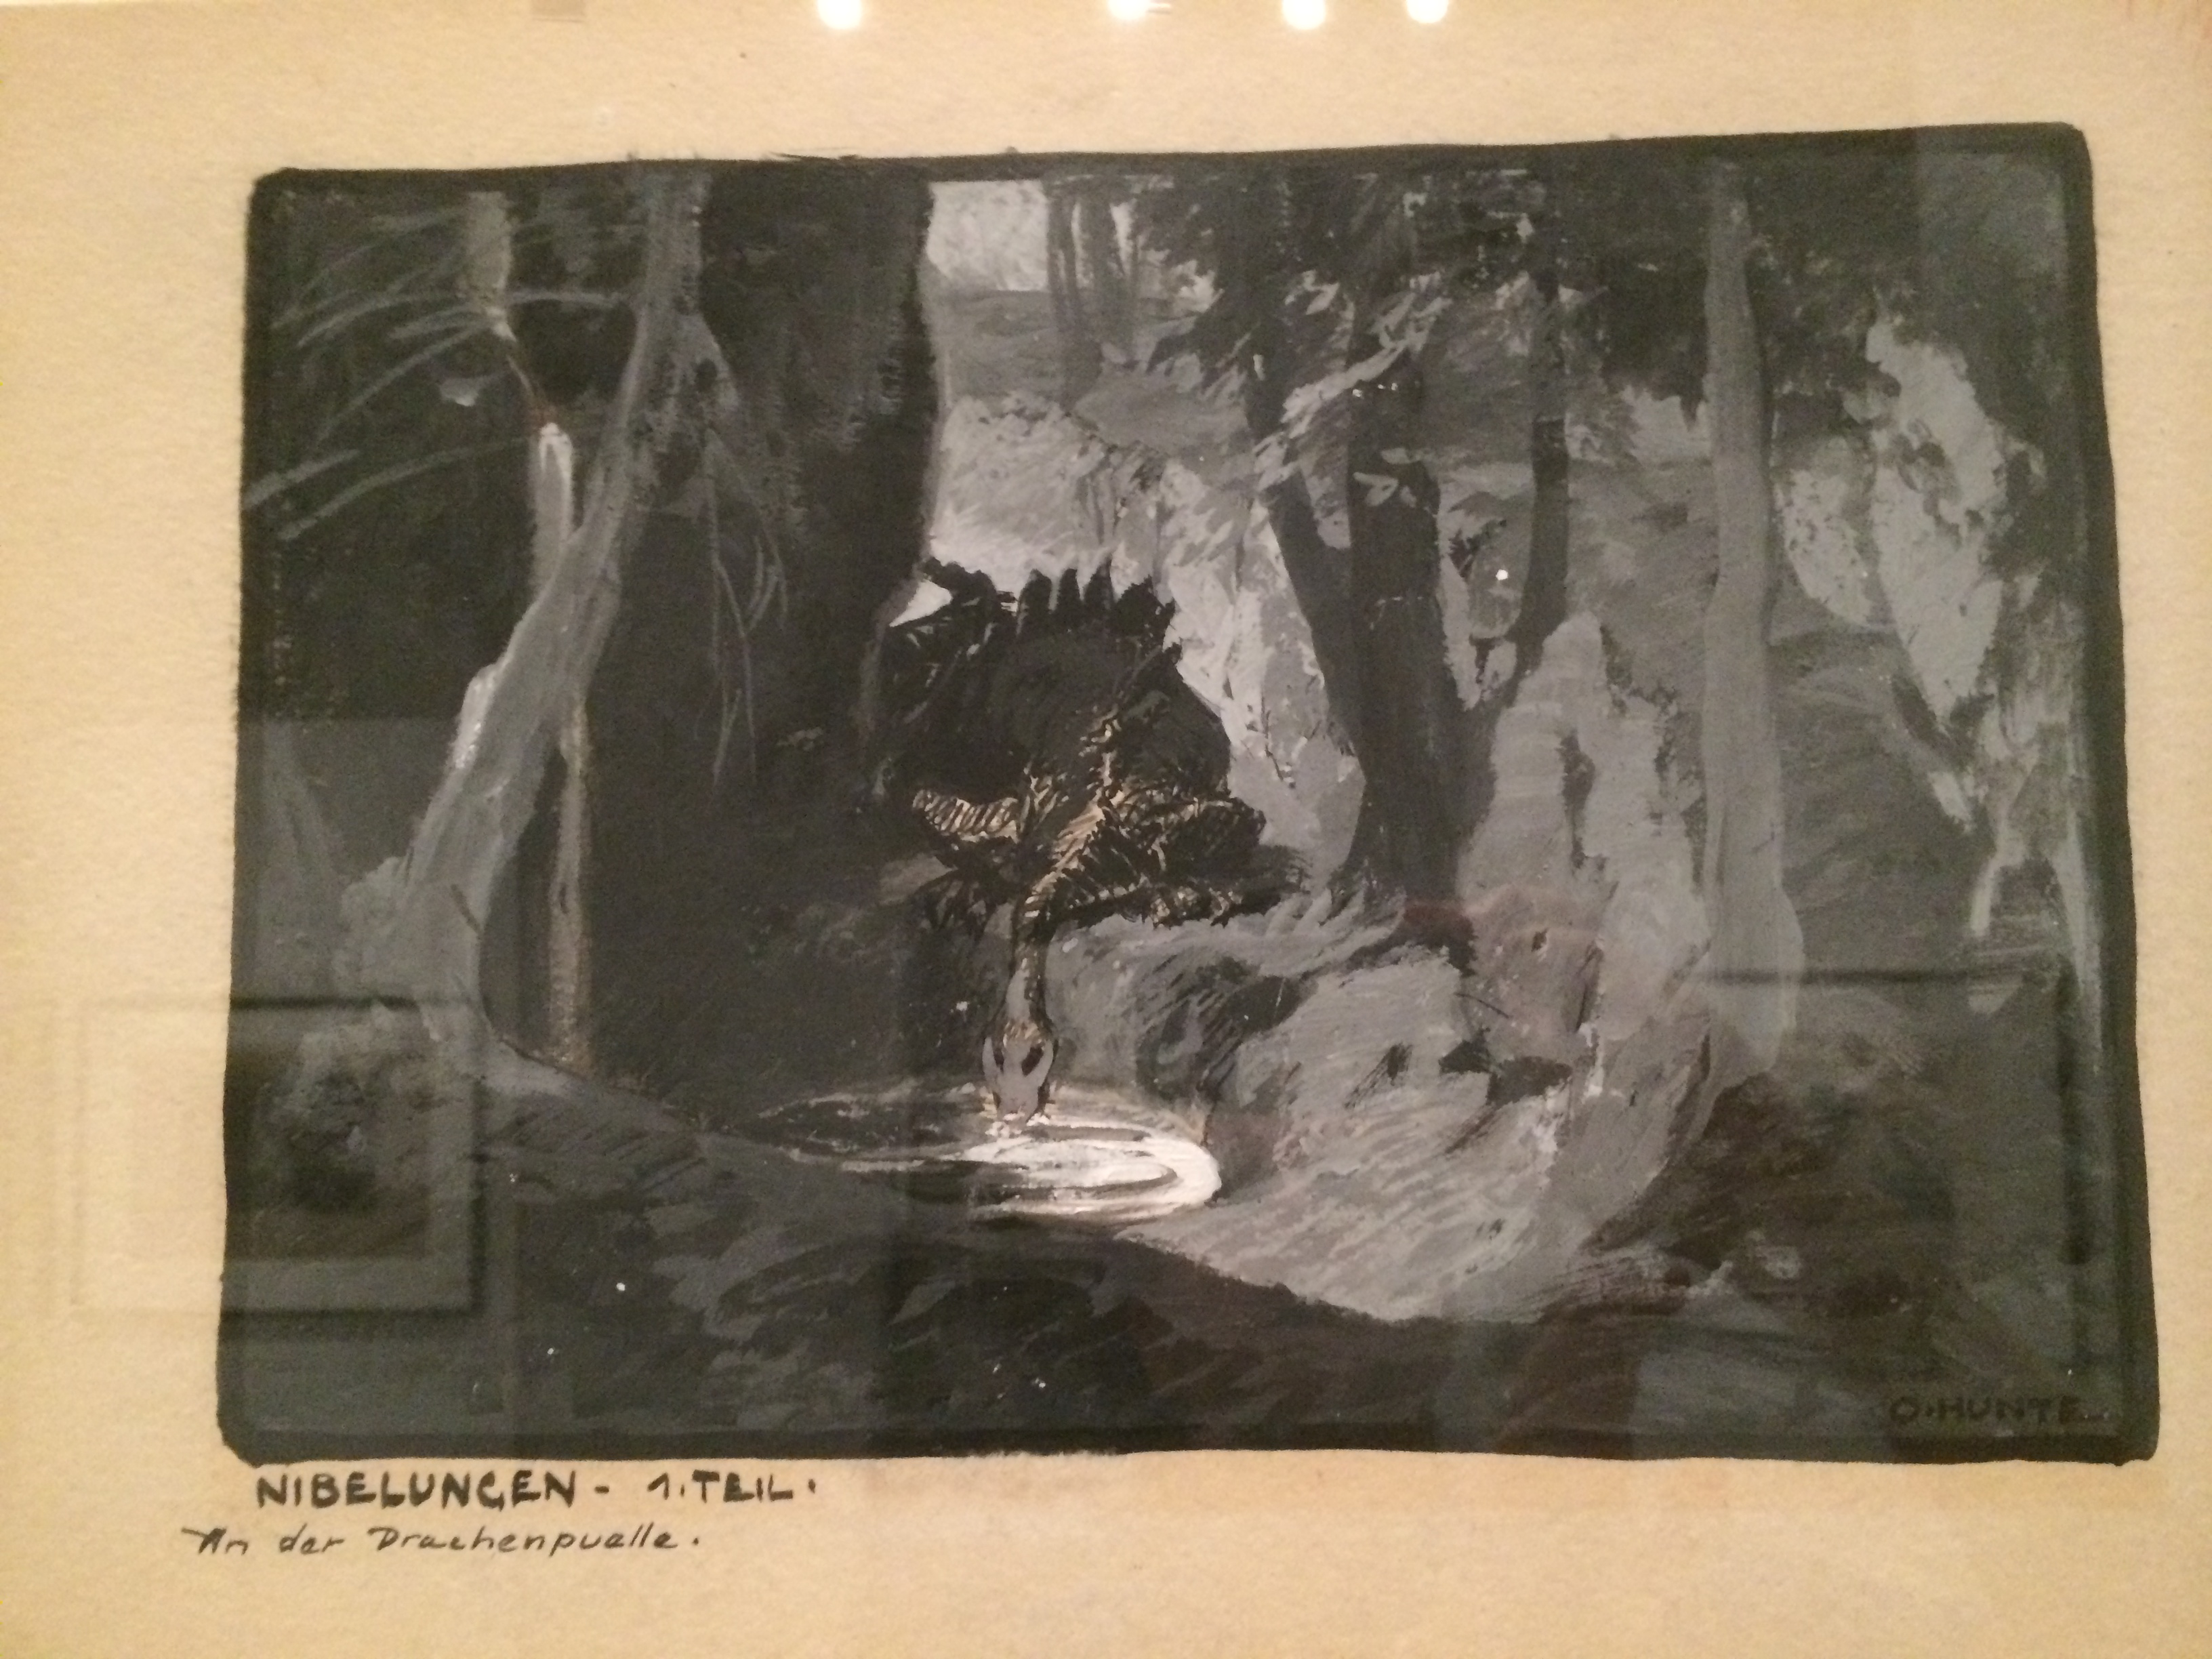 Gouache painting of the dragon for Die Nibelungen by Otto Hunte.